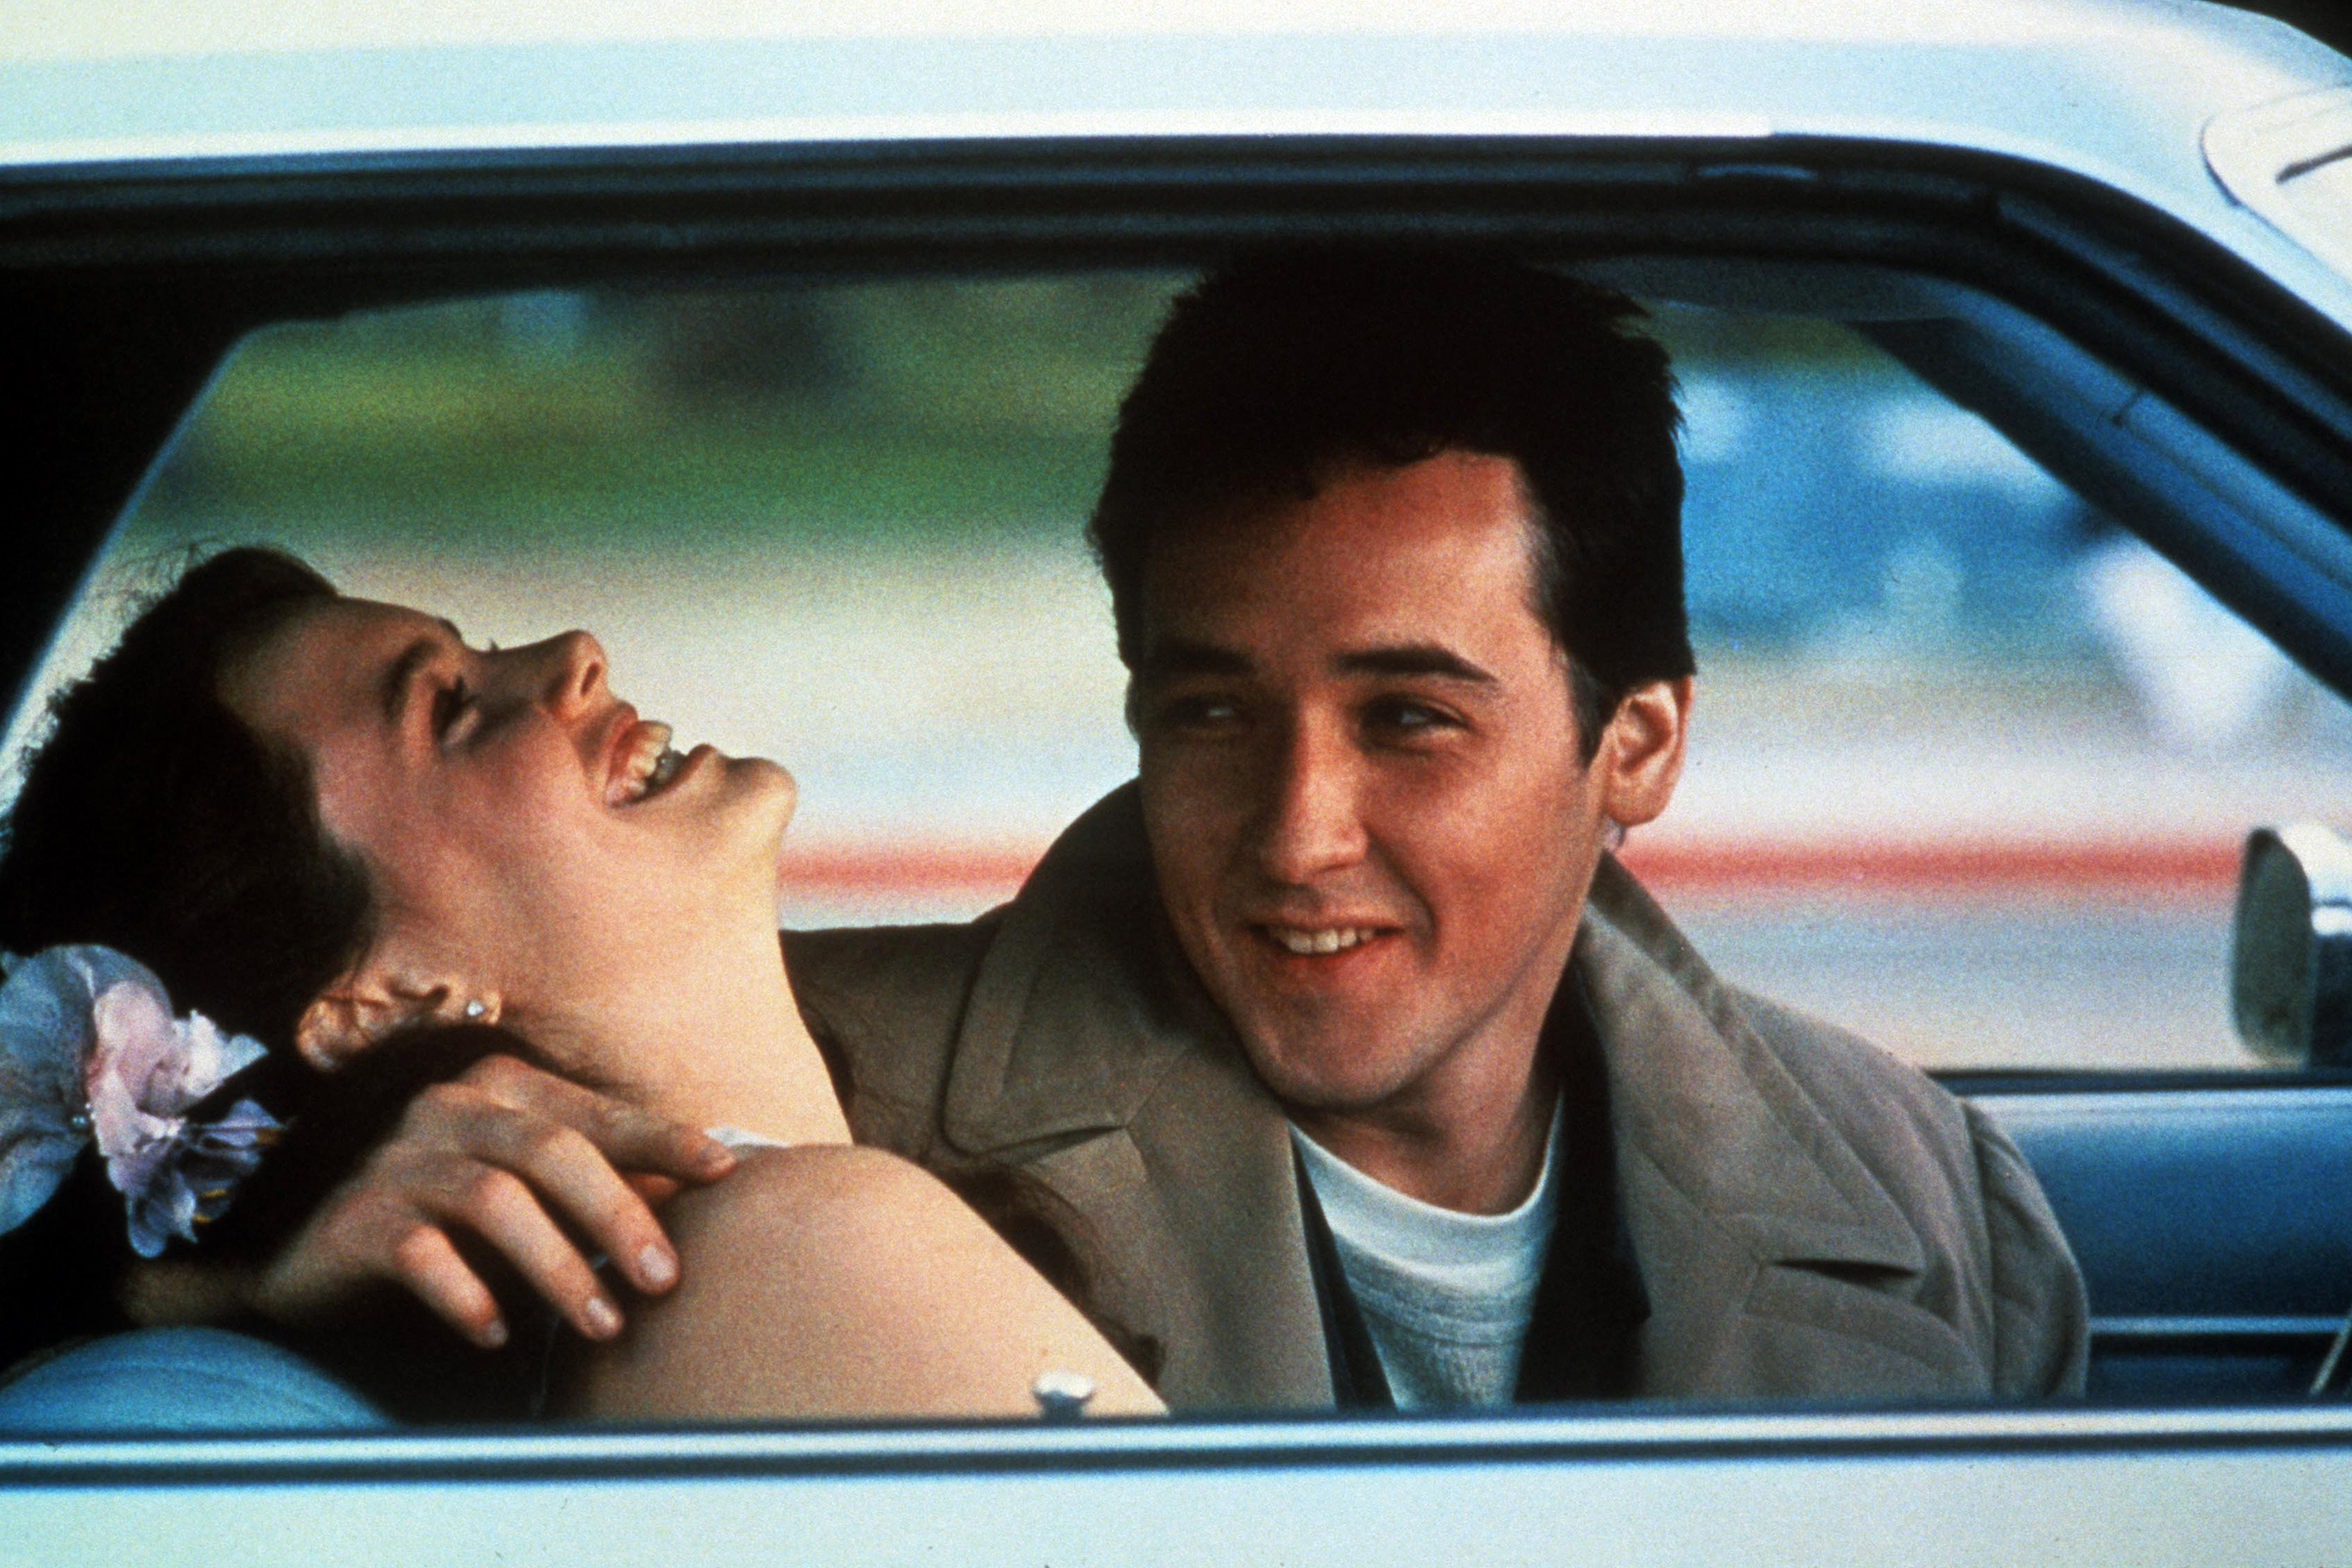 'Say Anything' Cast to Reunite for 30th Anniversary Screening at Tribeca Film Festival